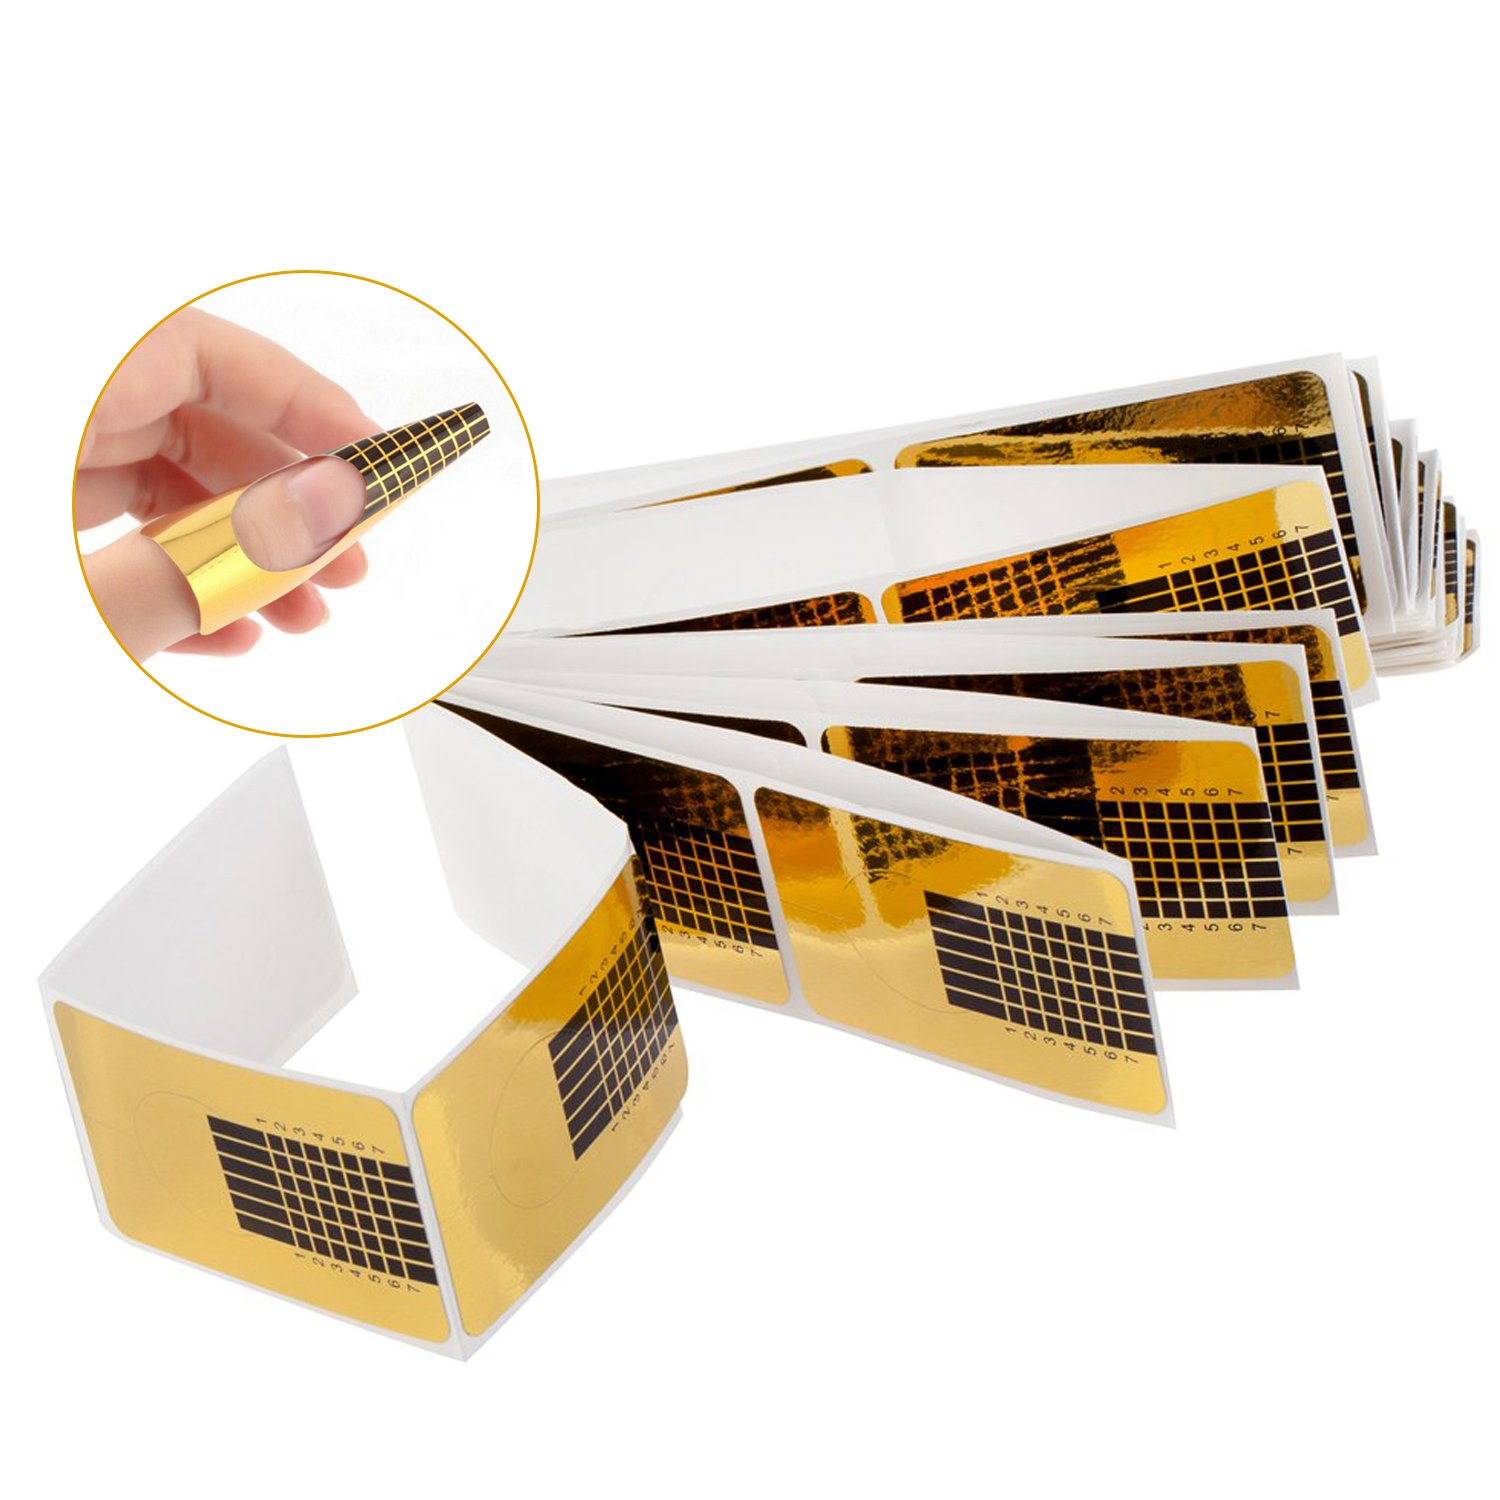 Best Value Set of 100pcs Professional Nail Art Acrylic Nails Extensions Tips Guides / UV Gels Self Adhesive Guiding Stickers In Golden Colour By VAGA